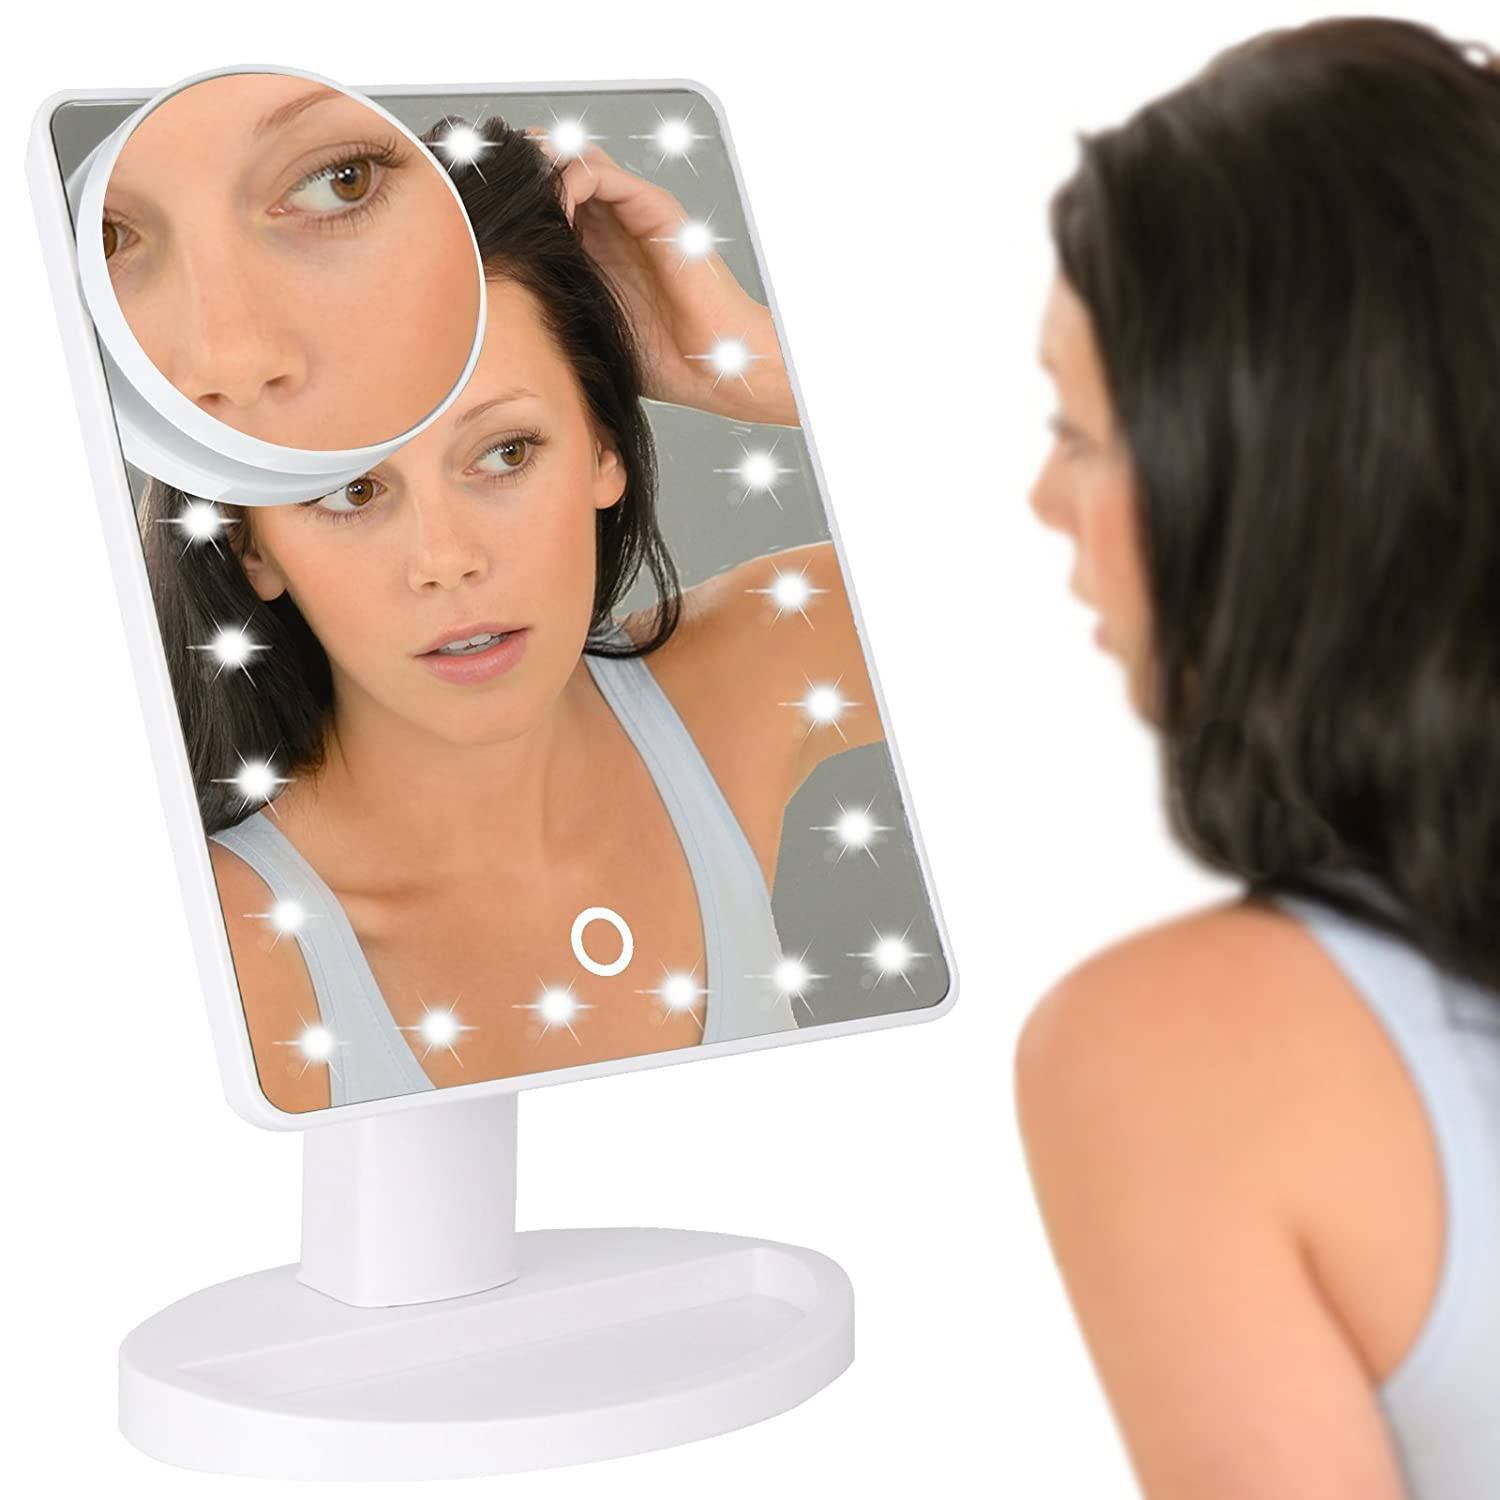 LED Light Up Illuminated Make Up Bathroom Mirror With Magnifier M/&W White New